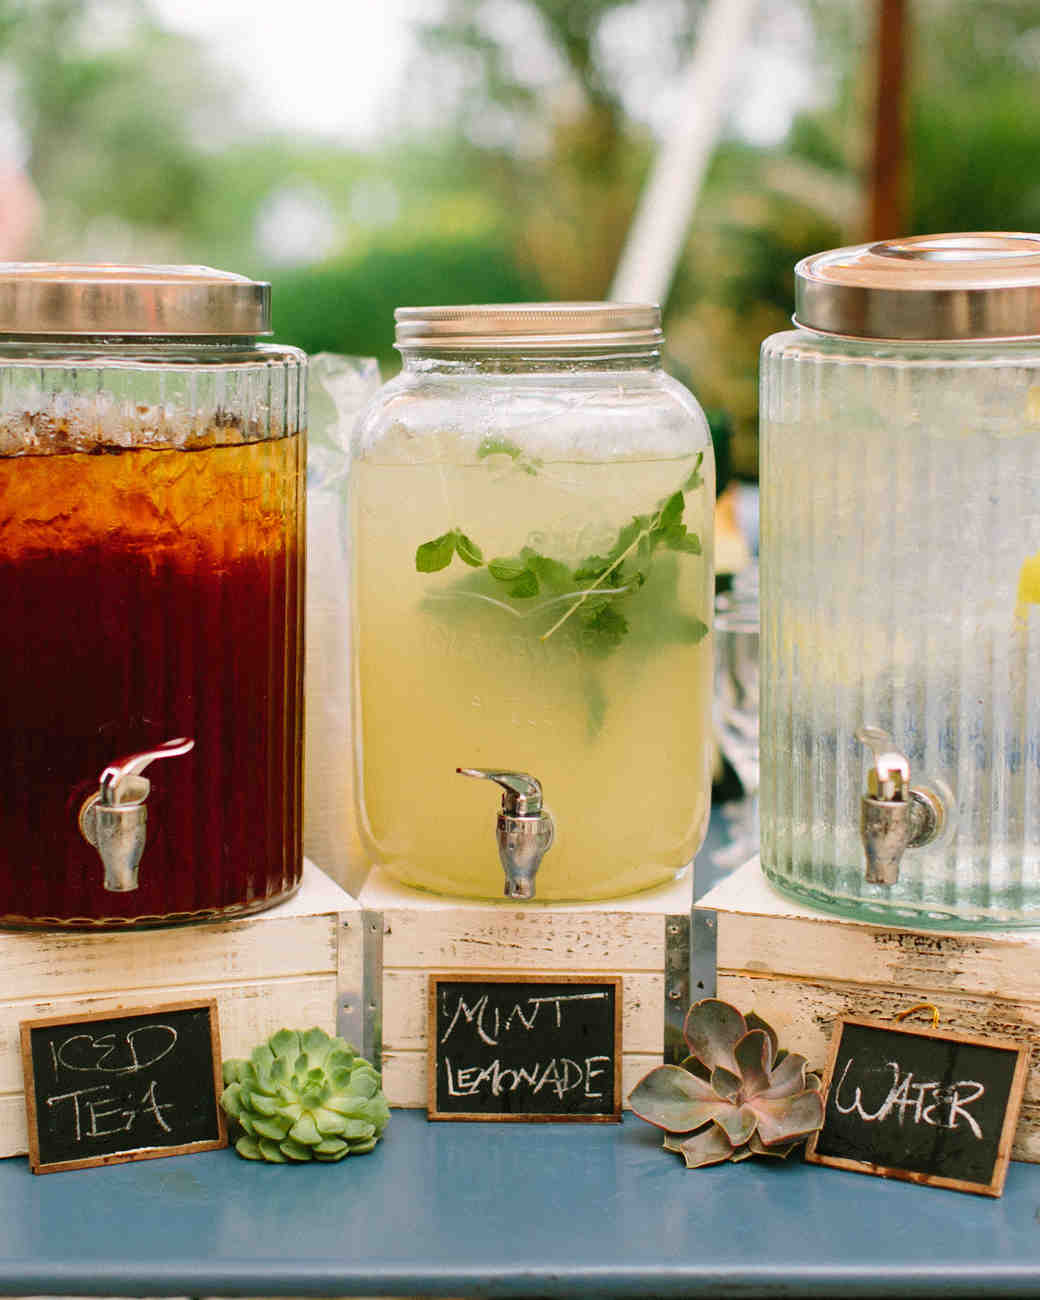 Water, lemonade and iced tea station at an outdoor wedding